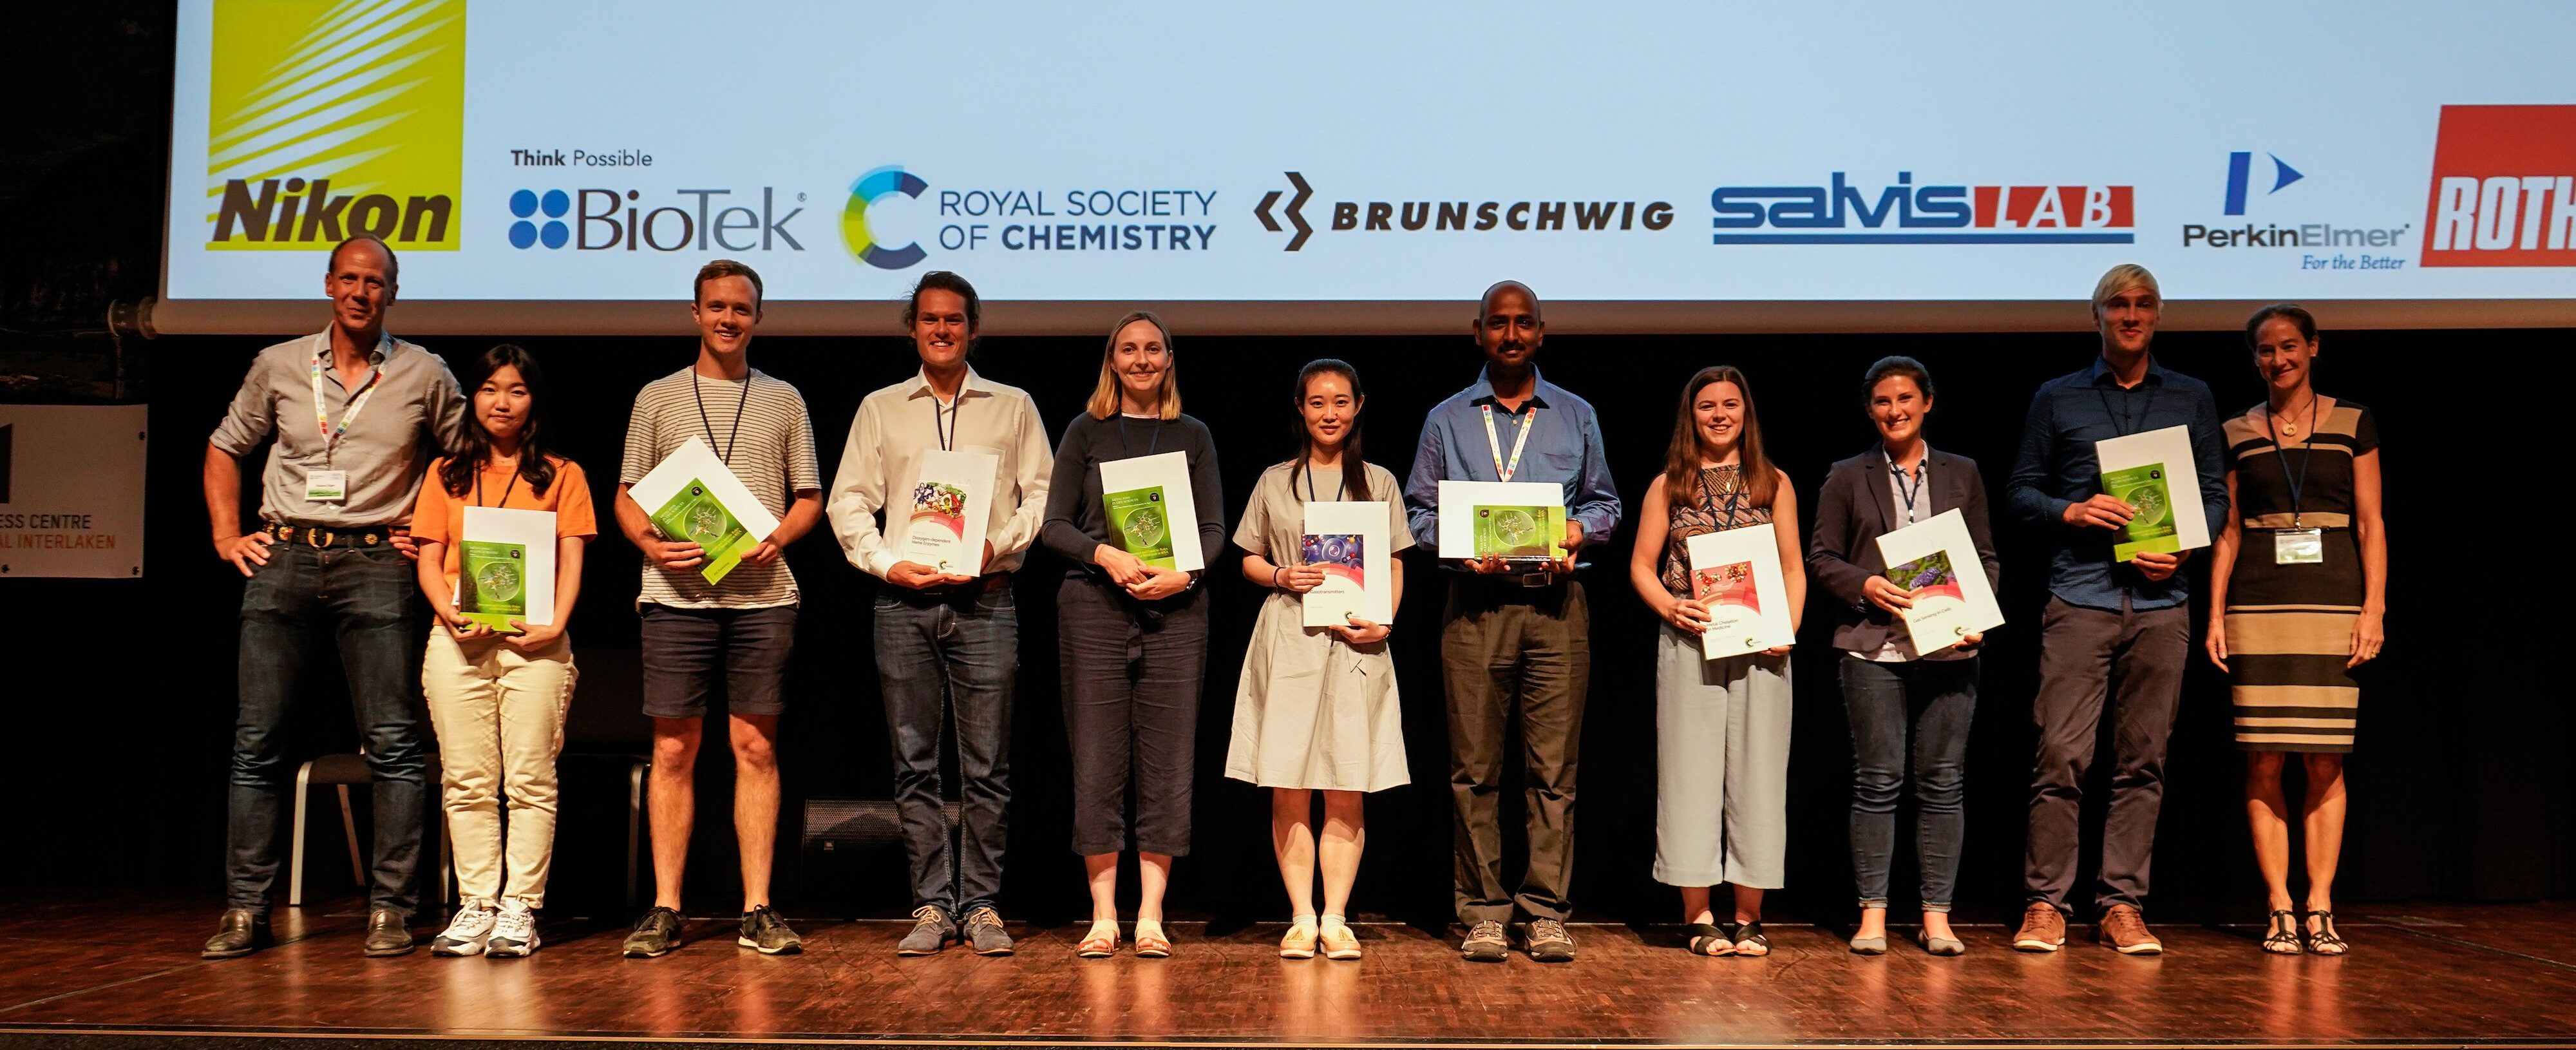 ICBIC-19 Poster Prize winners